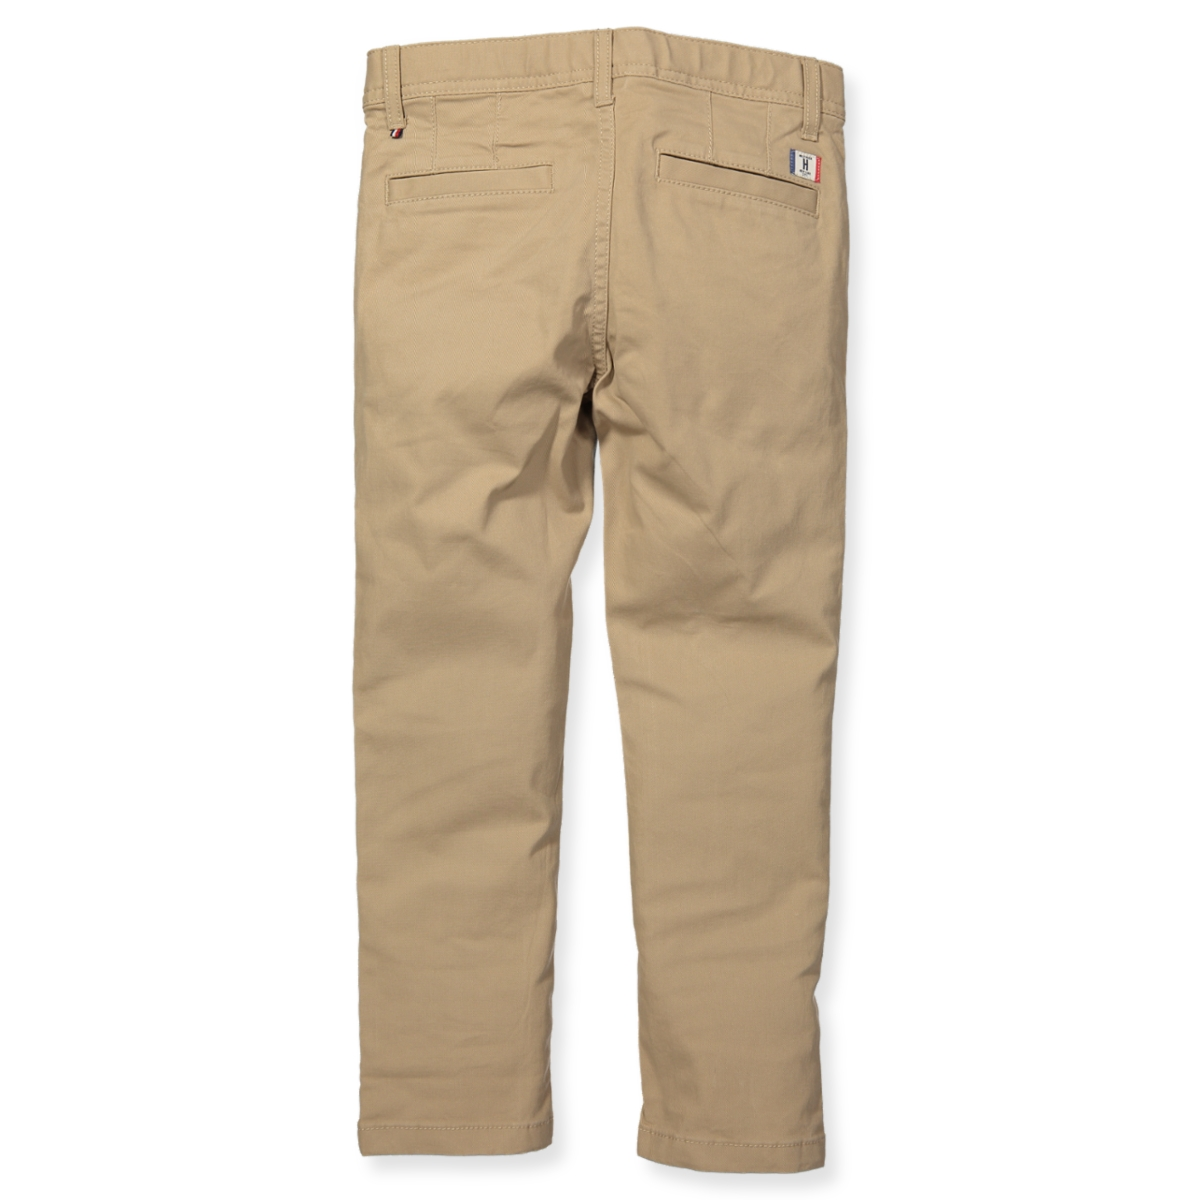 Tommy Jeans Scanton Chino Pant Navy Kelp BNWT Tommy Hilfiger Trousers